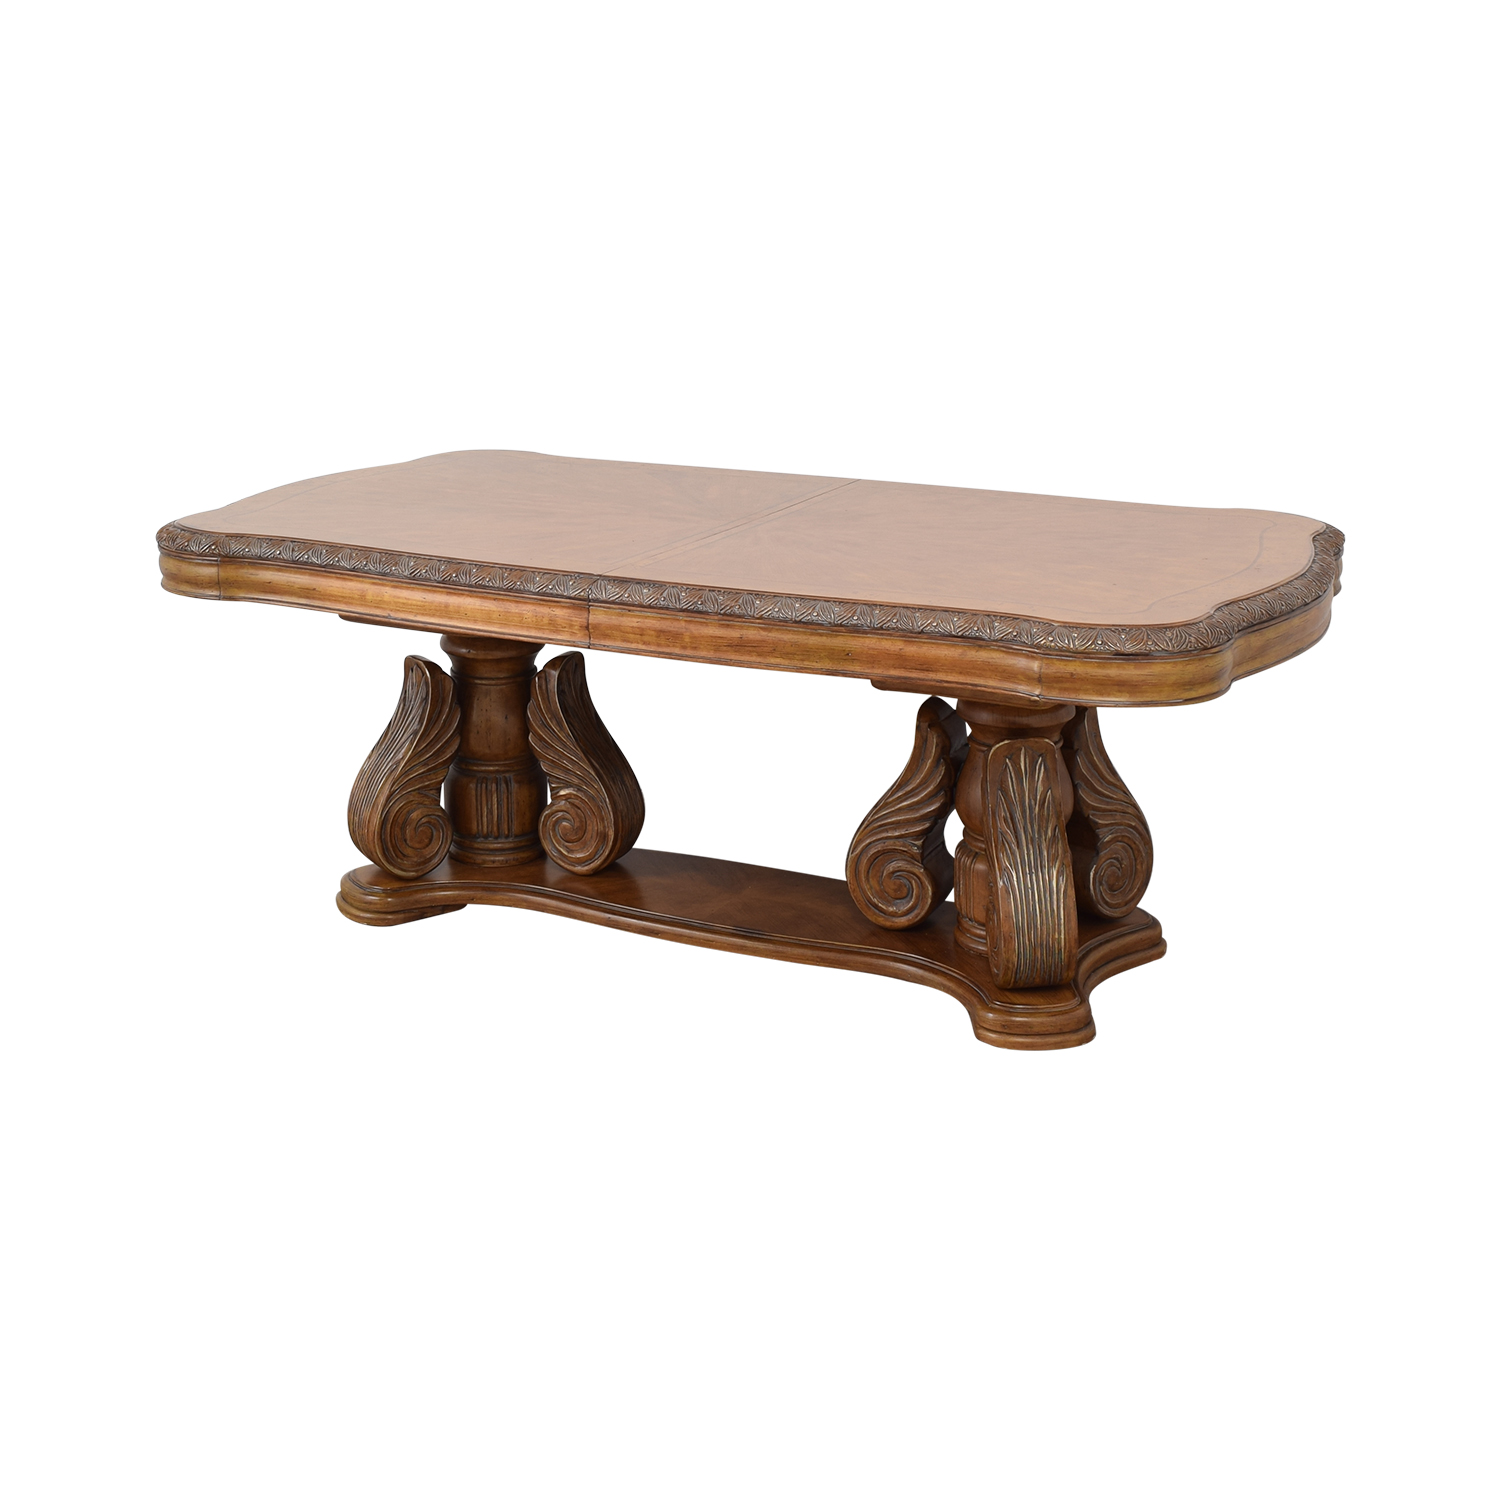 Michael Amini Michael Amini Extendable Dining Table with Two Leaves used